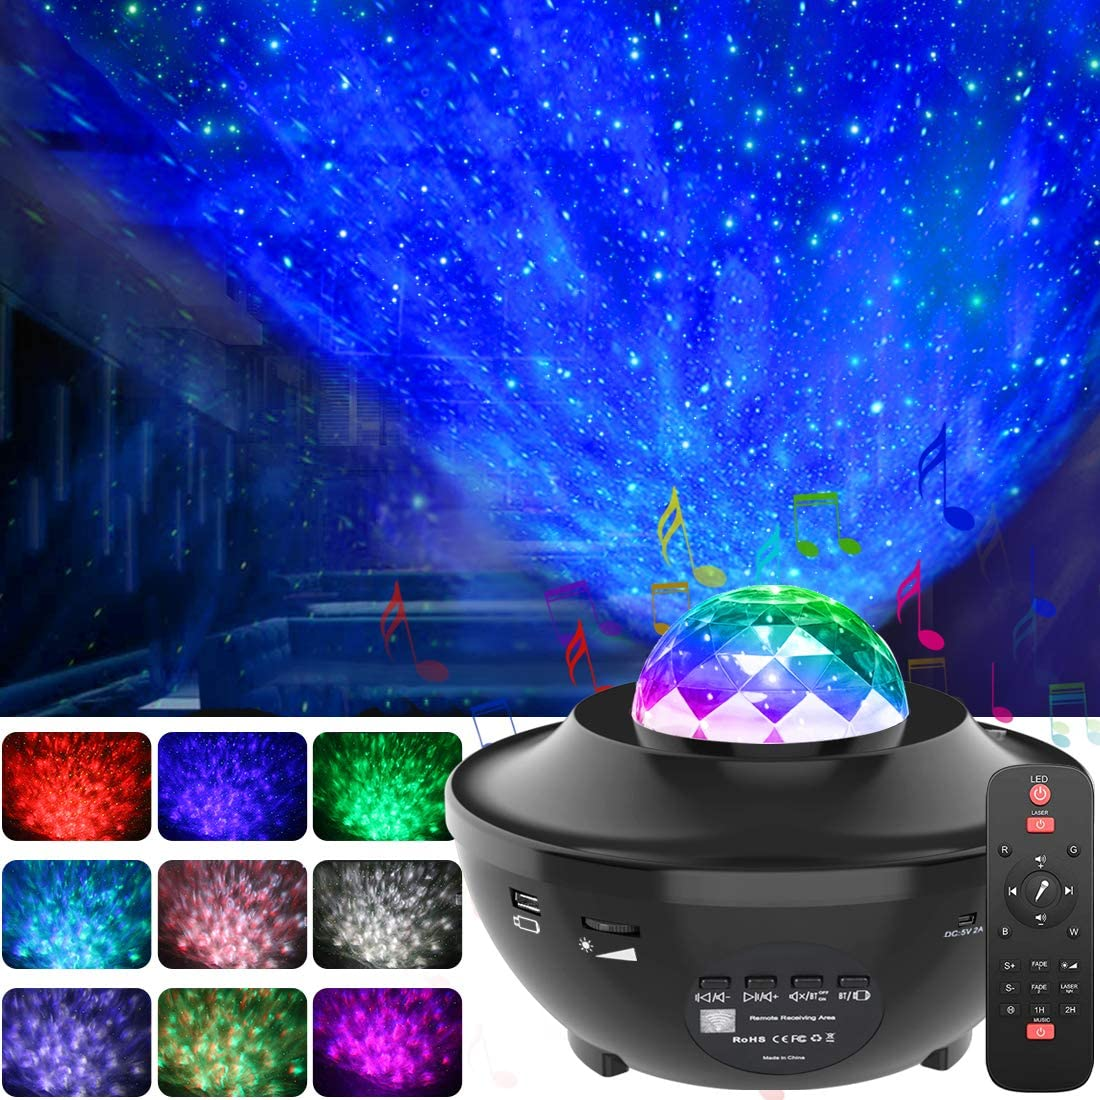 Night Light For Baby Bedroom Projector Ocean Wave Projector Star Projector Night Light Projector With Bluetooth Music Speaker